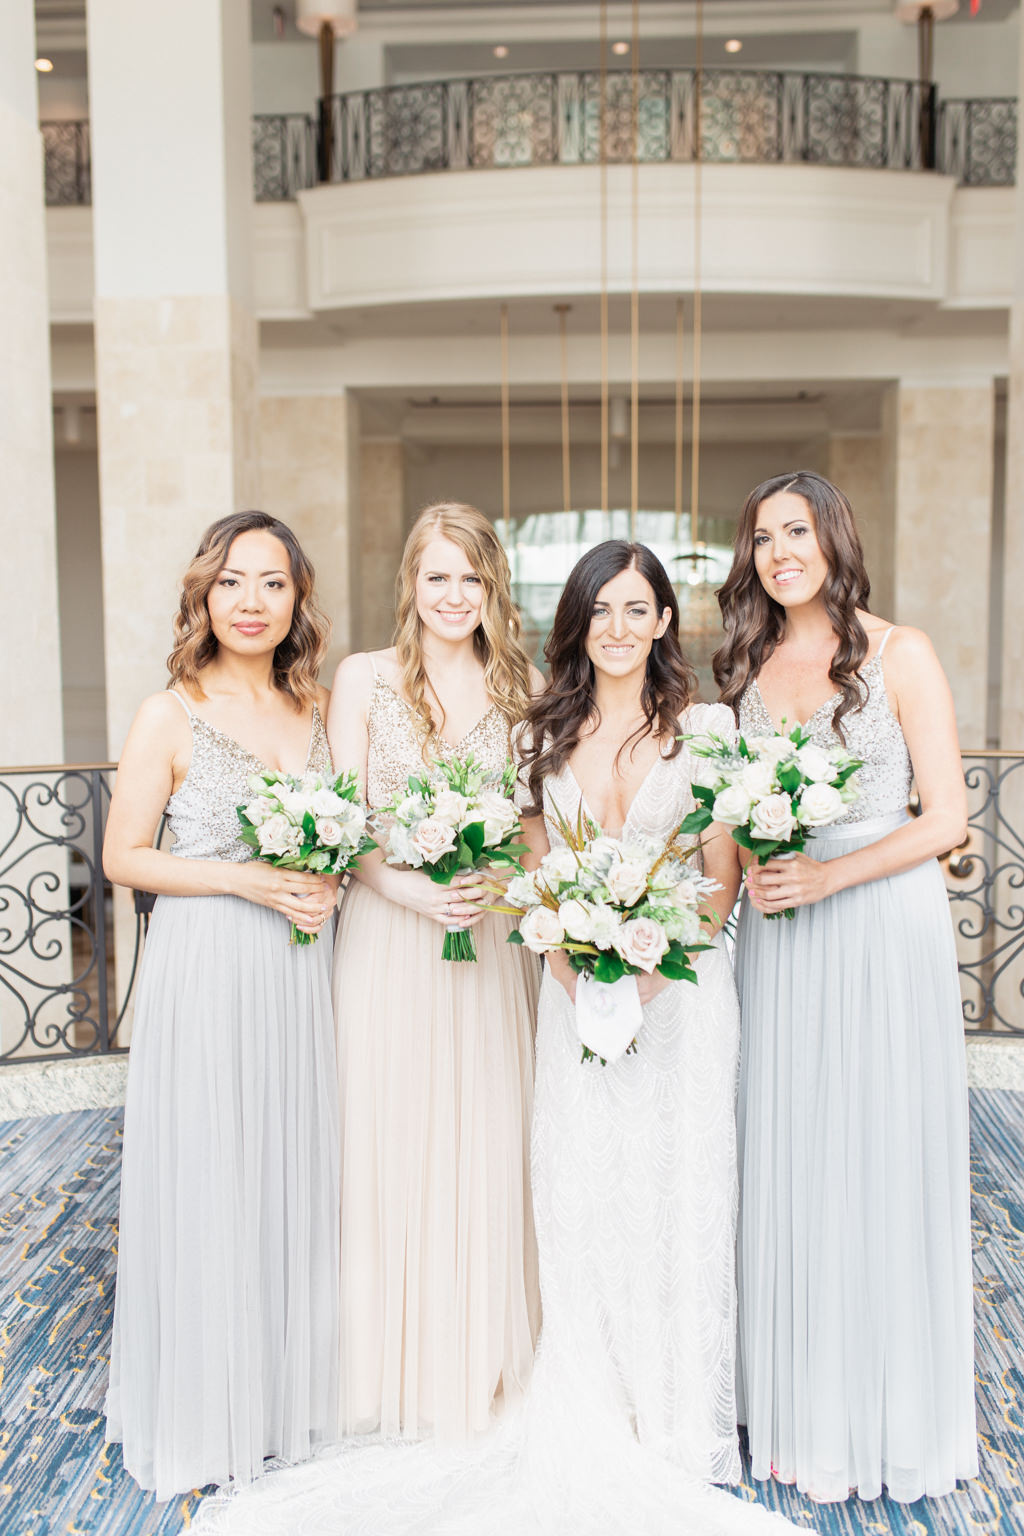 Classic Bride and Bridesmaids in Mix and Match BHLDN Gray and Nude Floor Length Flowy Dresses with Organic Ivory Roses and Greenery Floral Bouquets   Tampa Bay Wedding Hair and Makeup Femme Akoi Beauty Studio